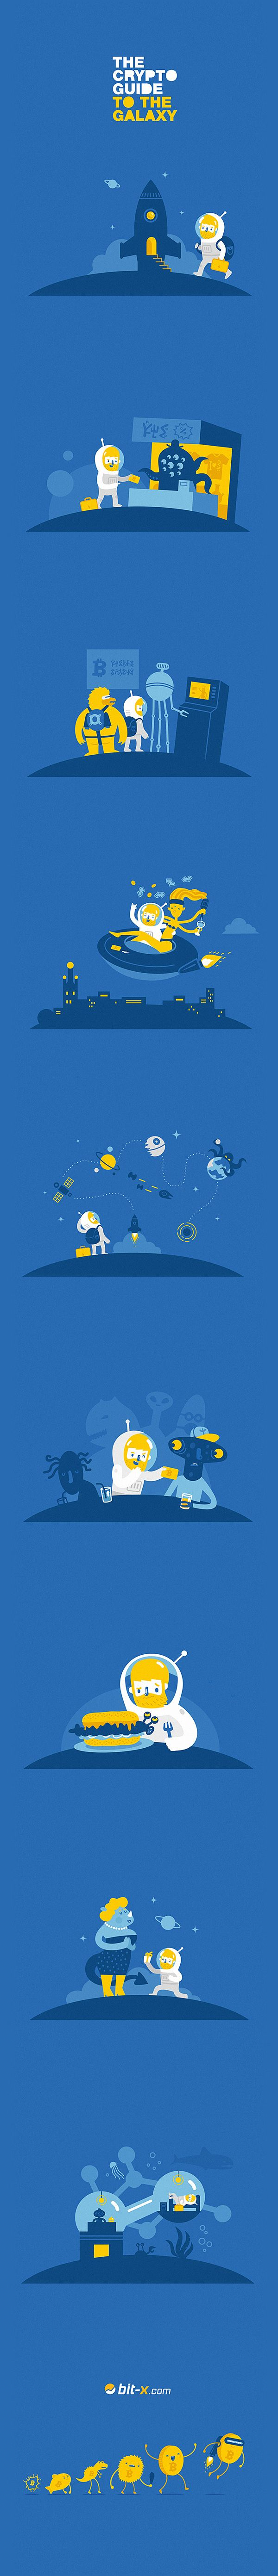 https://www.behance.net/gallery/24075155/The-Crypto-Guide-to-the-Galaxy